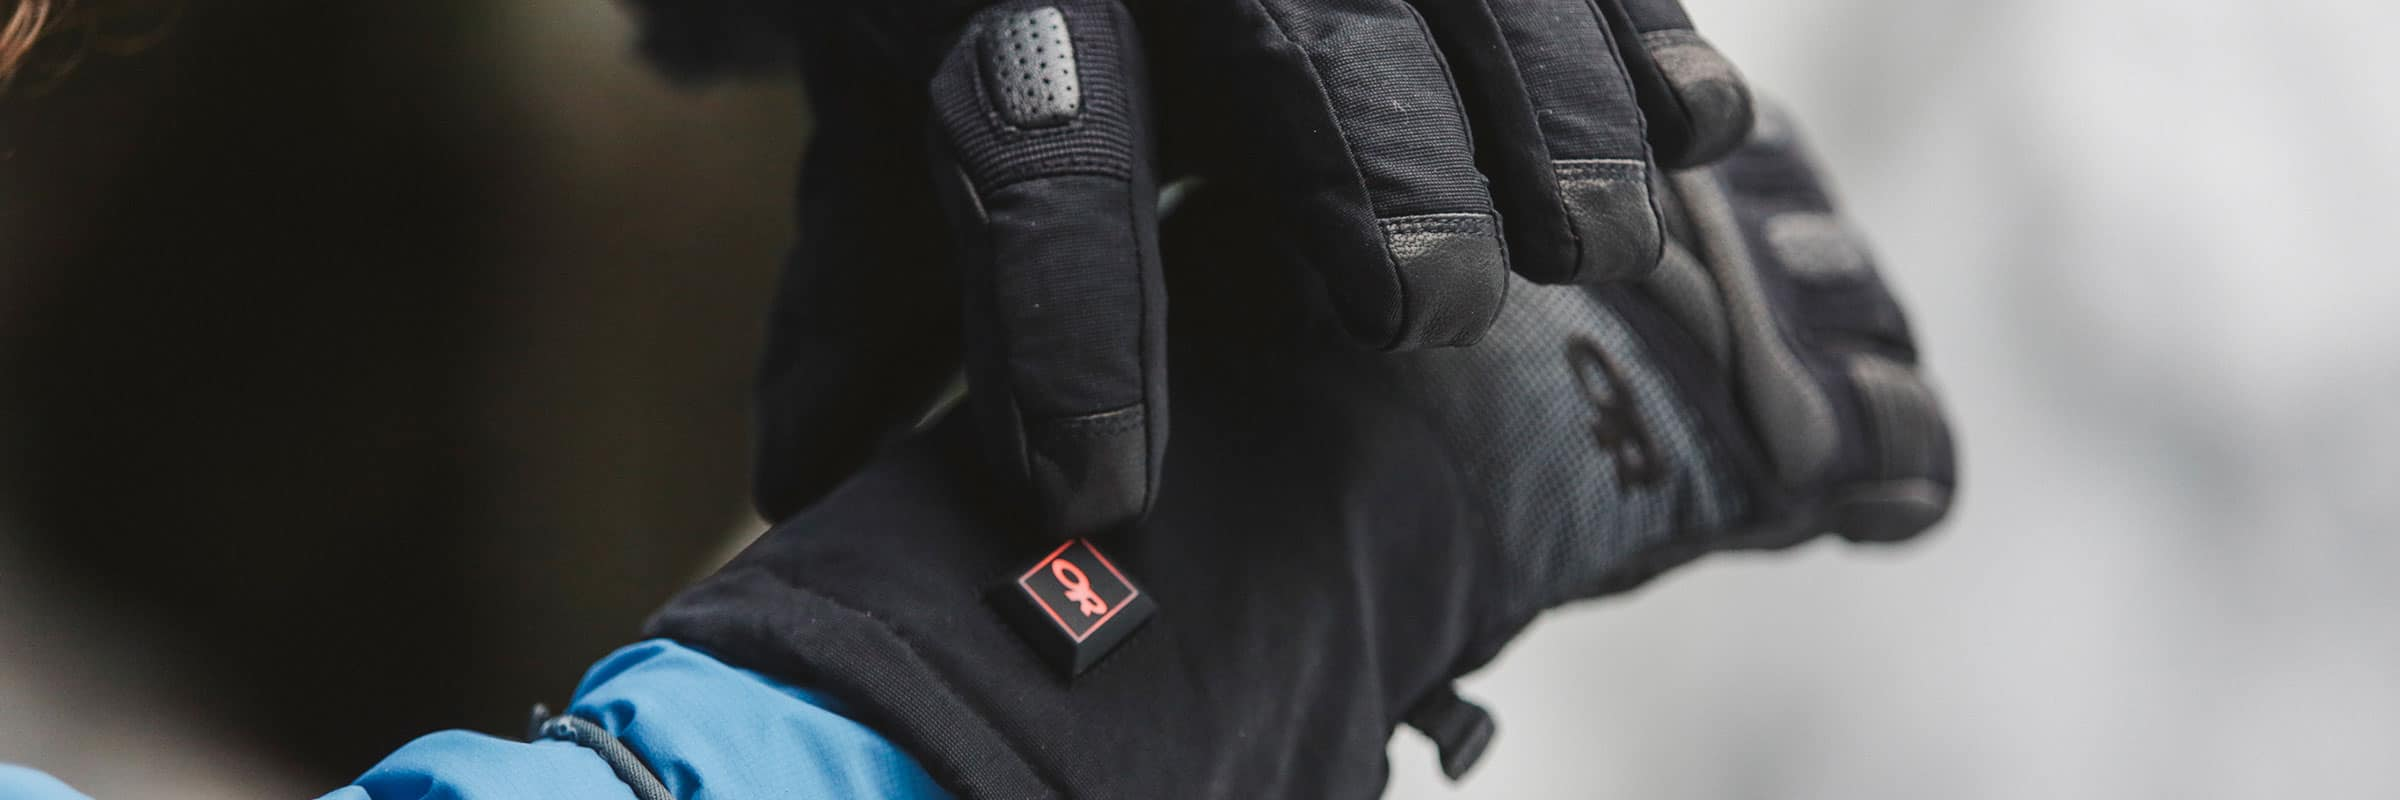 Outdoor Research Heated Gloves: Daylong Heated Comfort